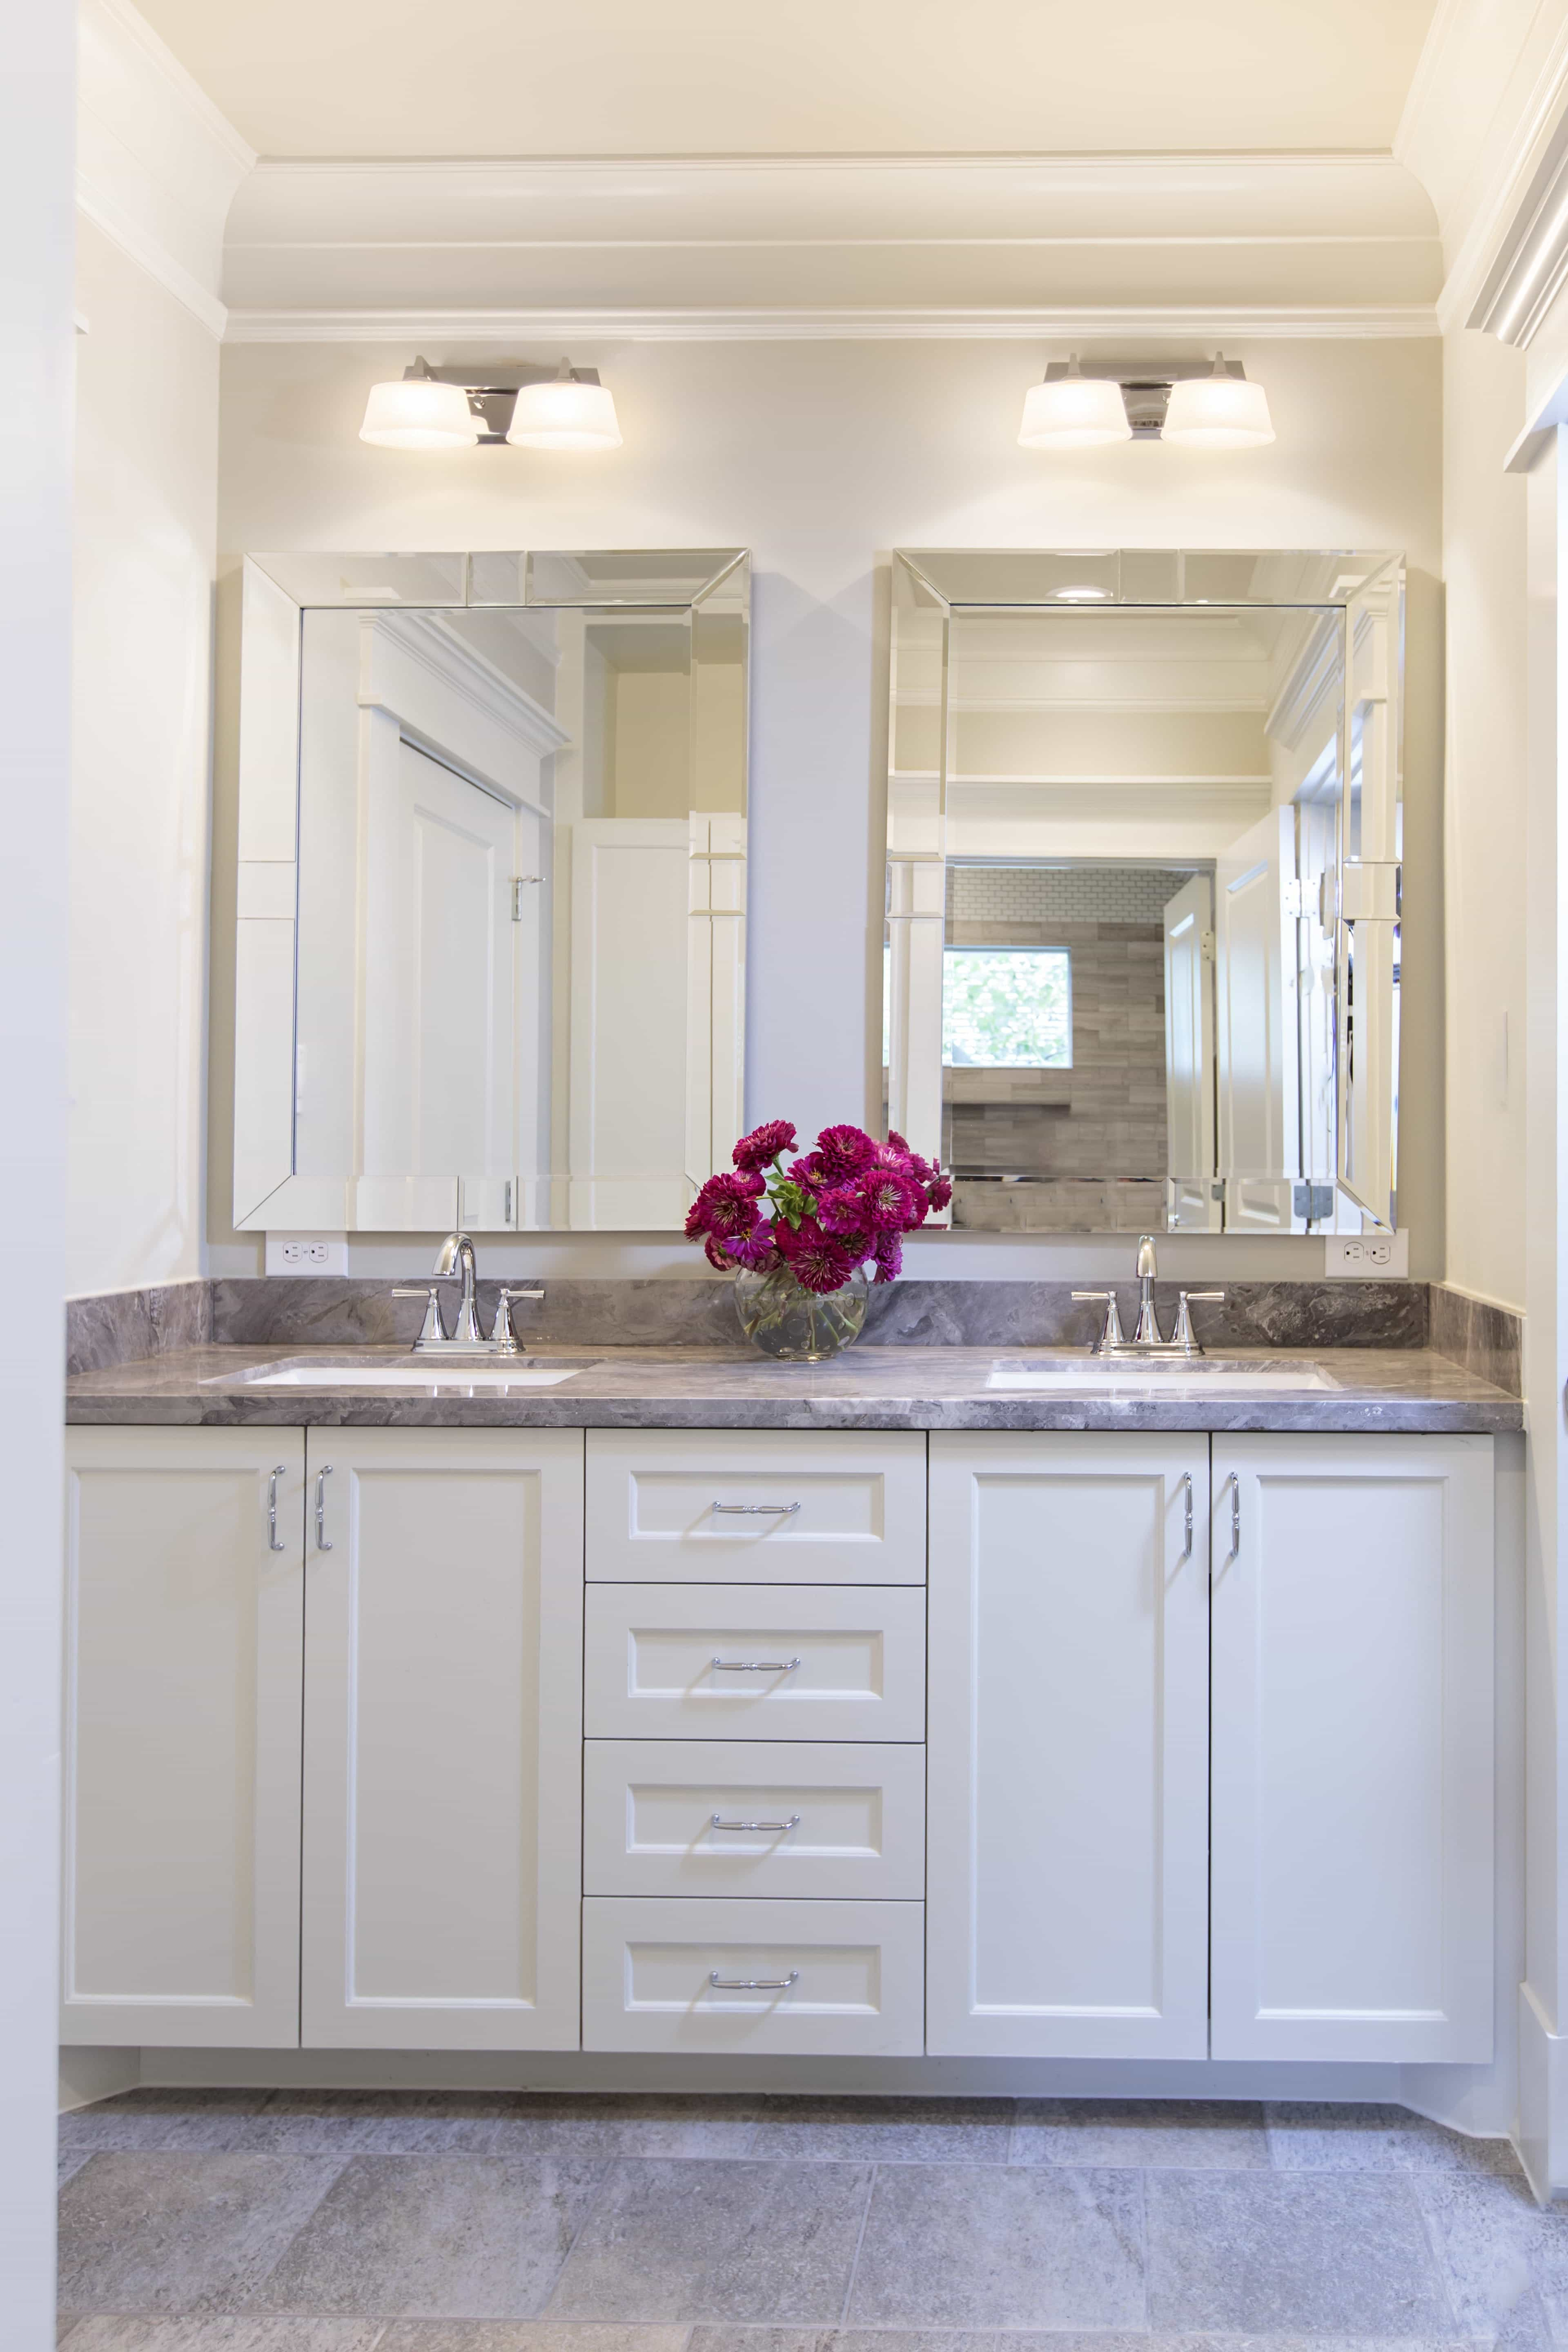 Classic Framed Mirrors With Modern Lighting (Image 7 of 20)